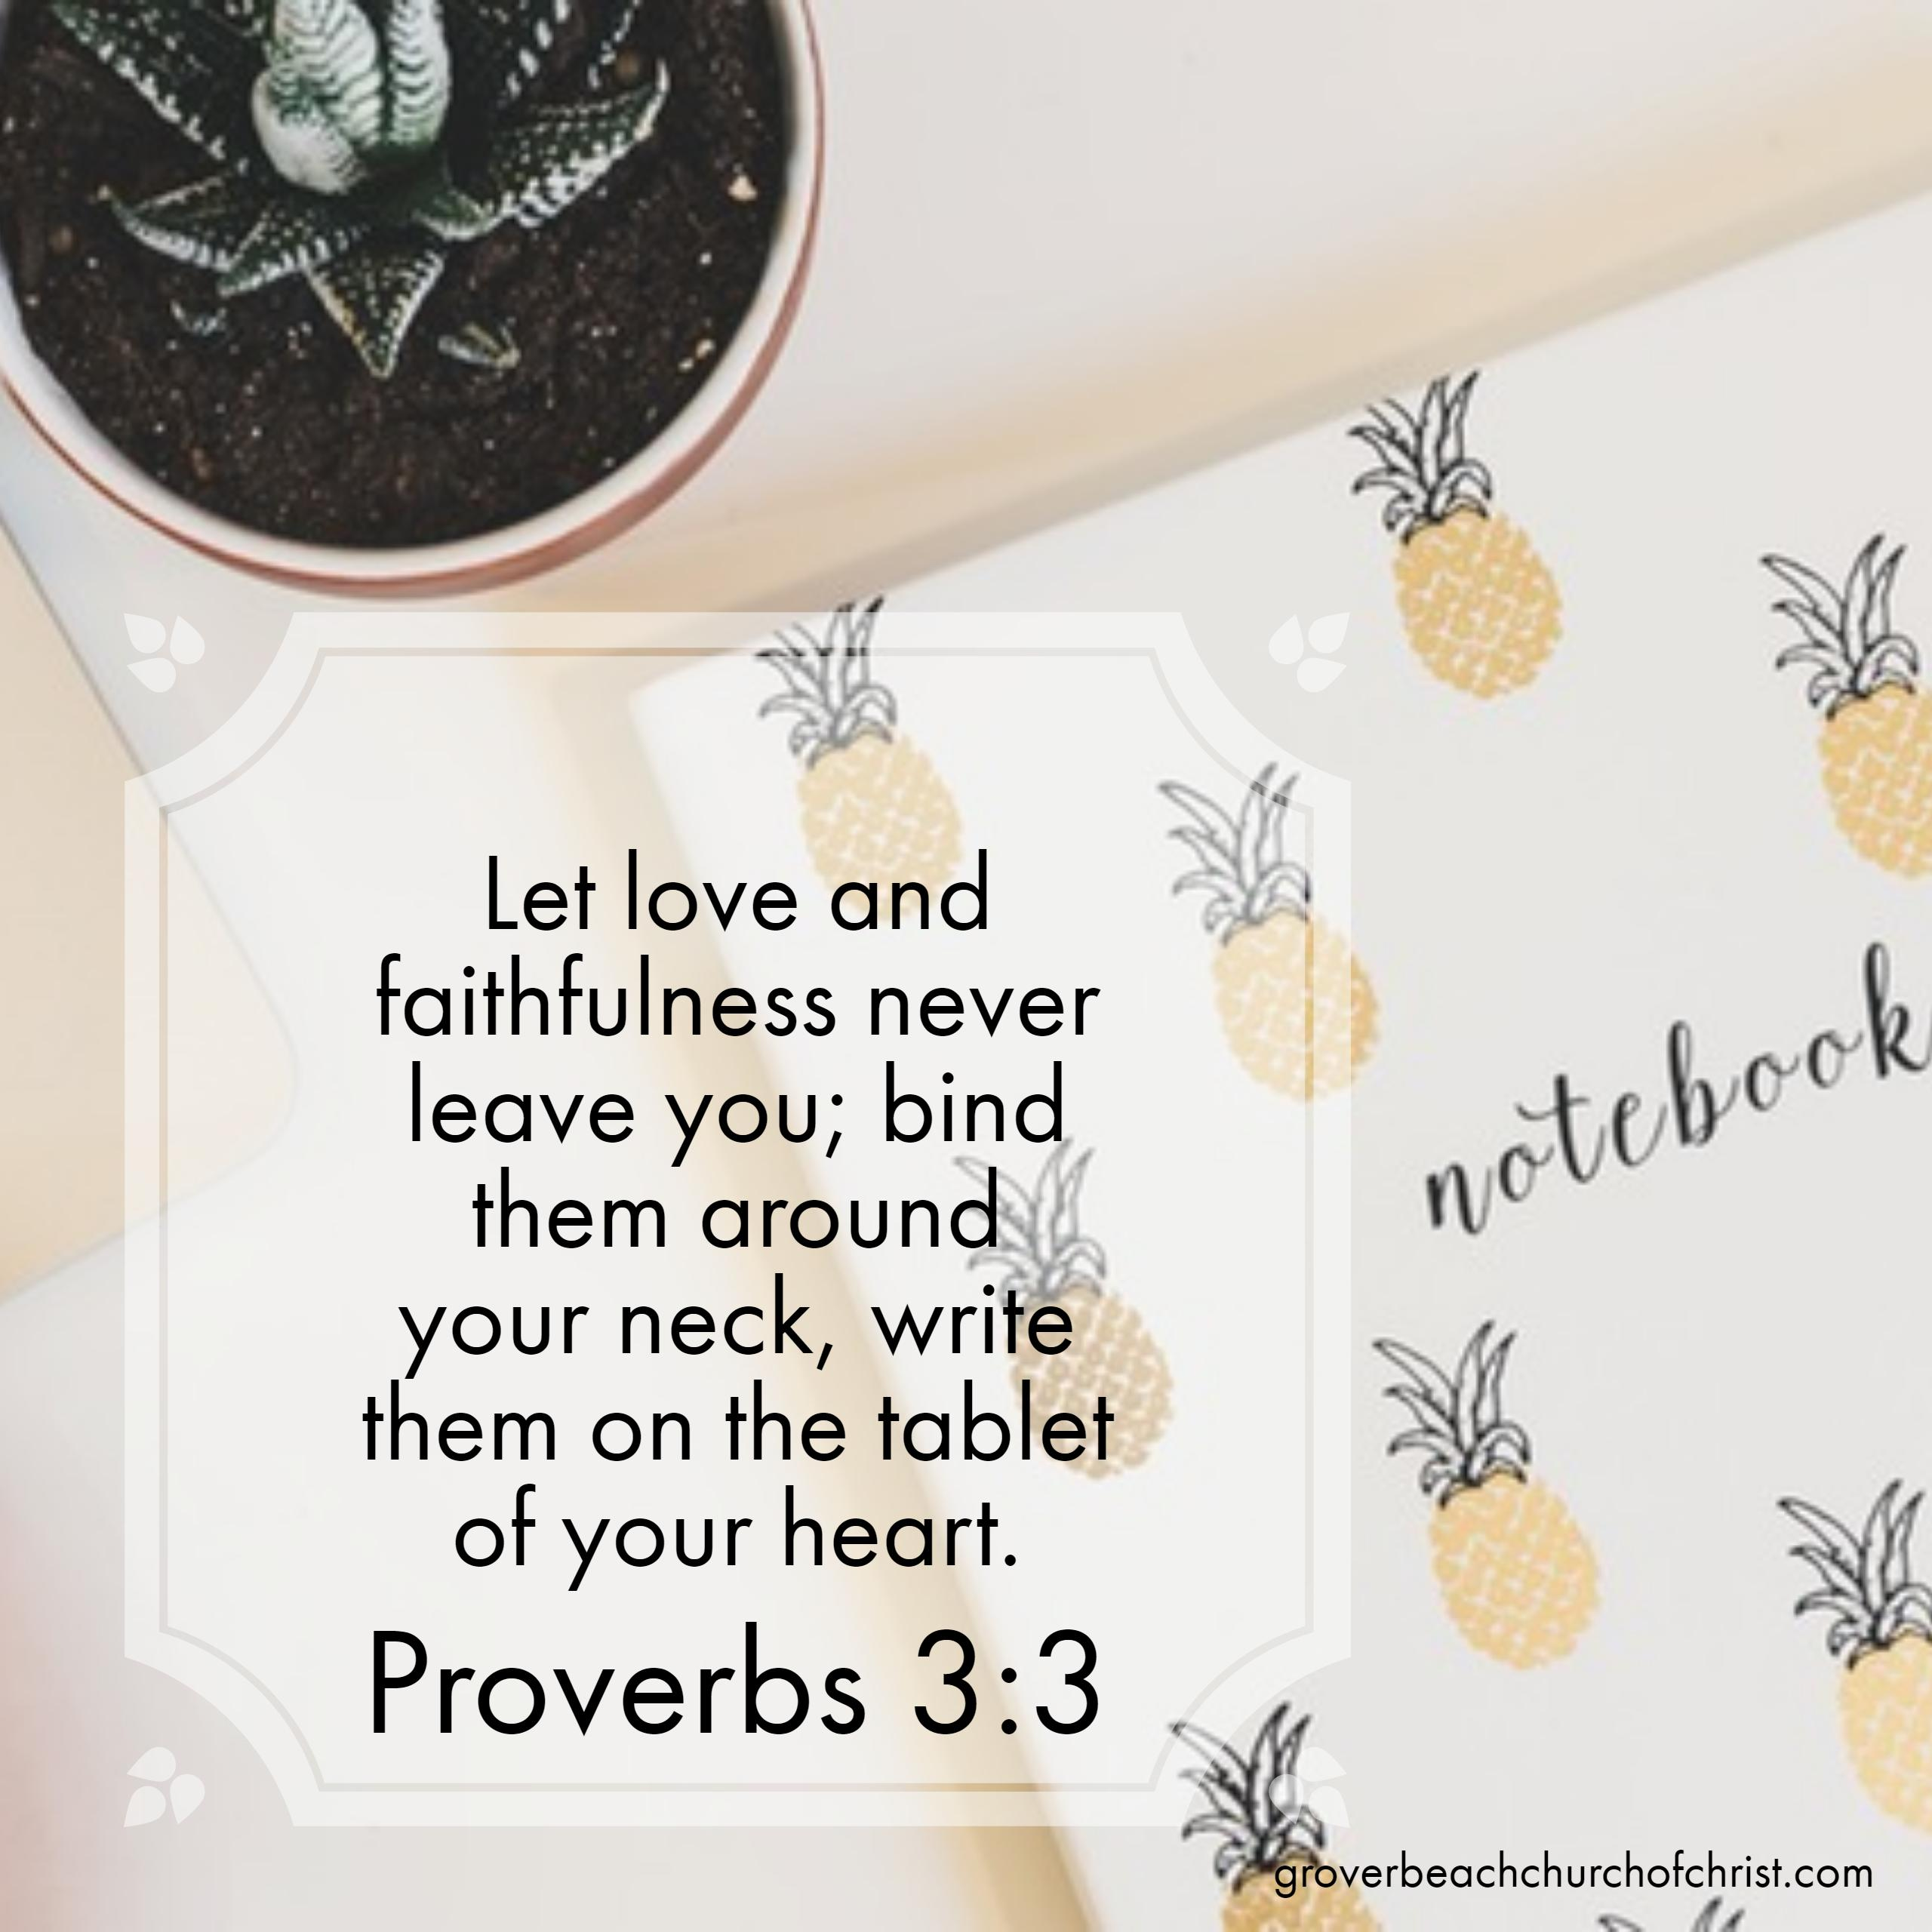 proverbs-3-3-let-love-and-faithfulness